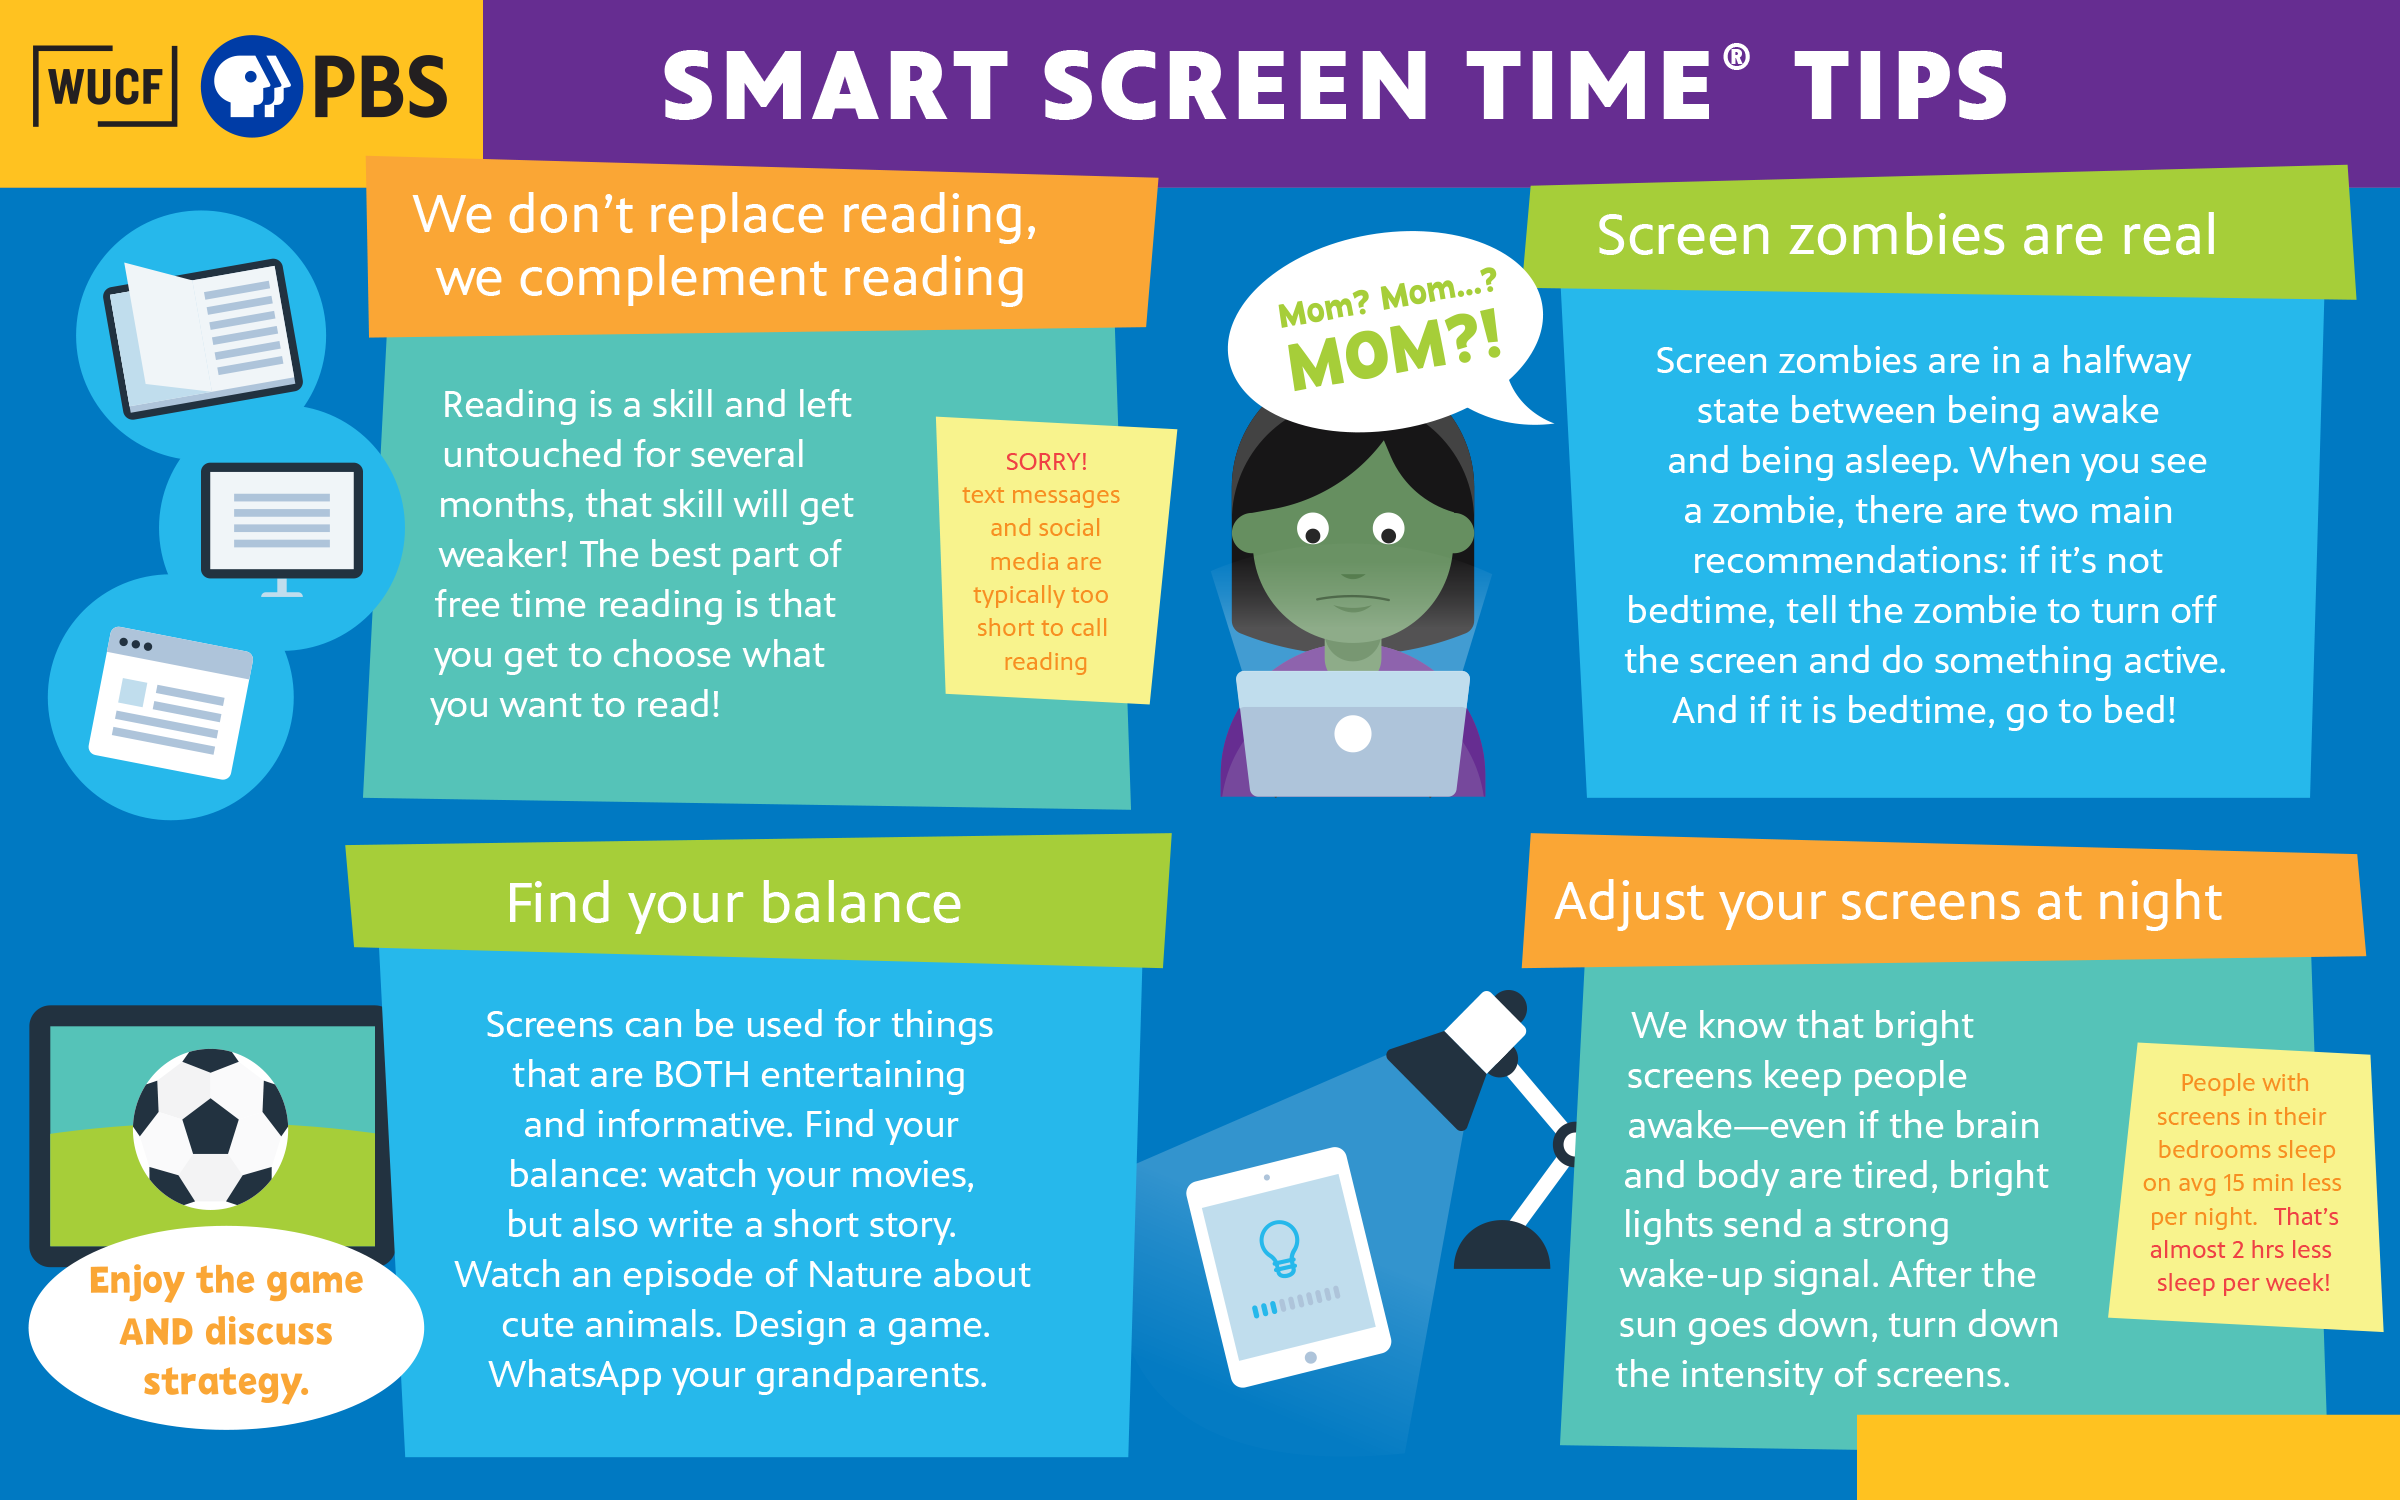 Smart Screen Time Tips